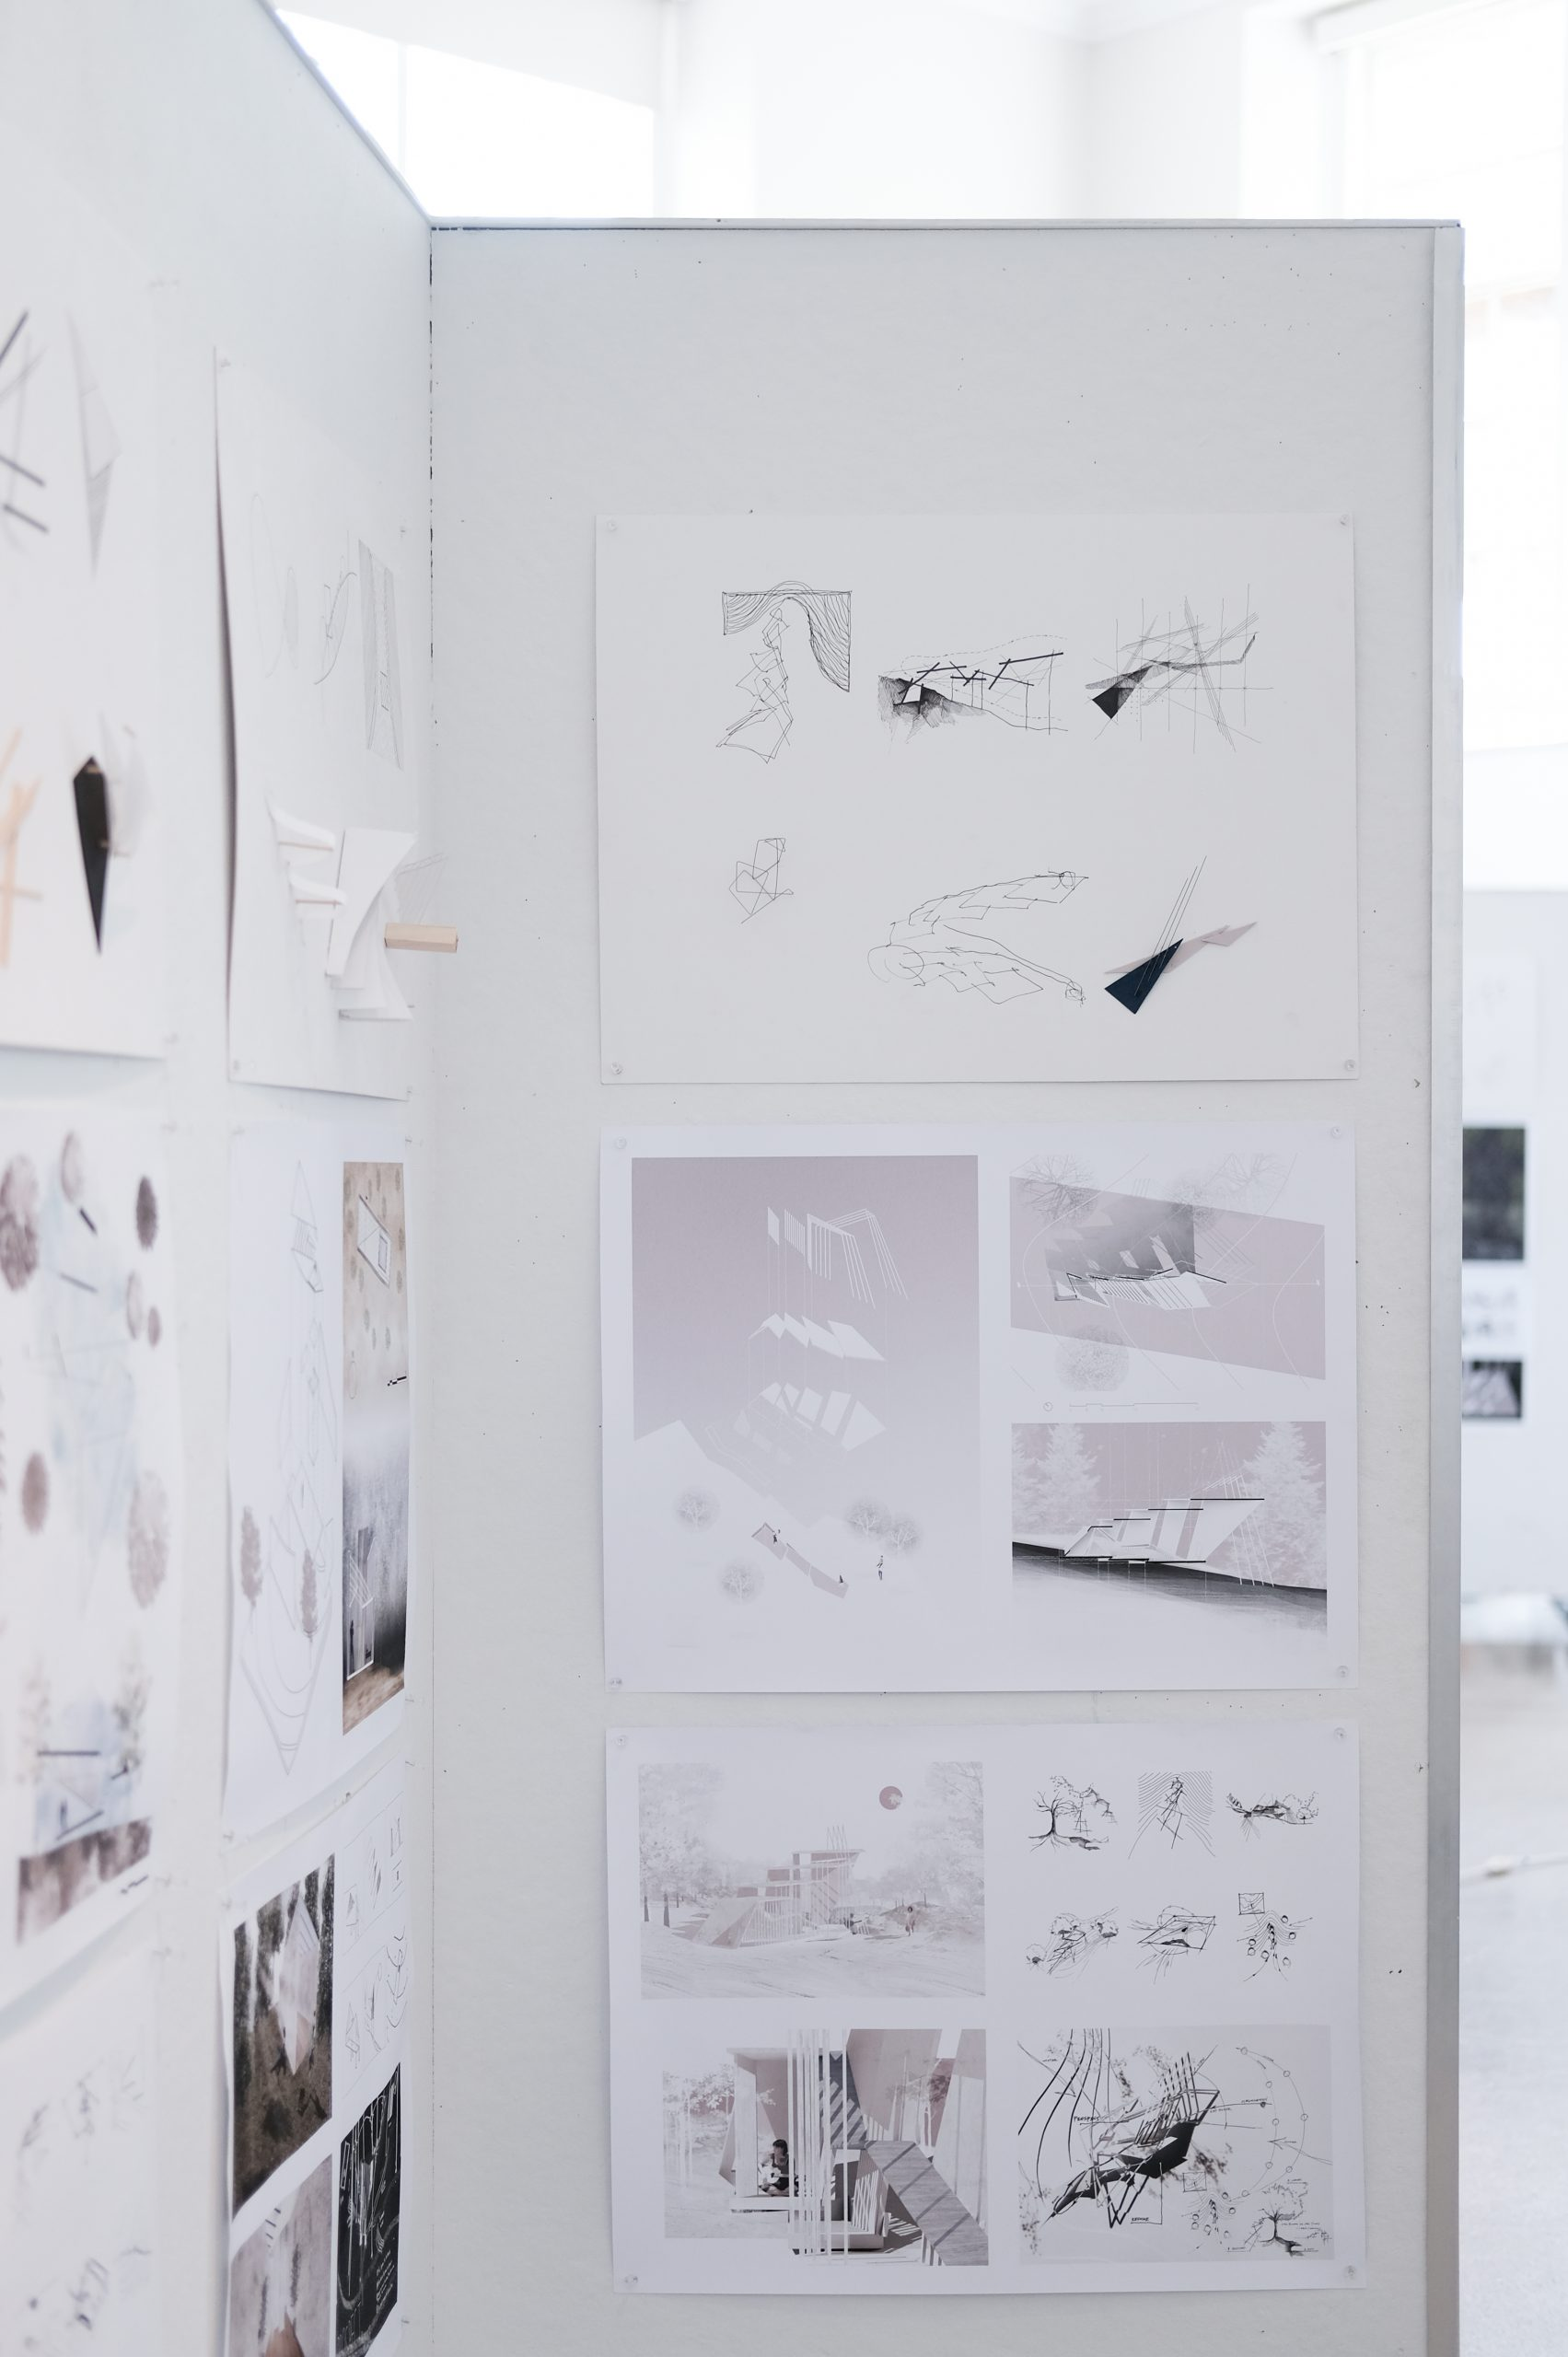 closeup view of final presentation boards in Temple Buell Architecture Gallery